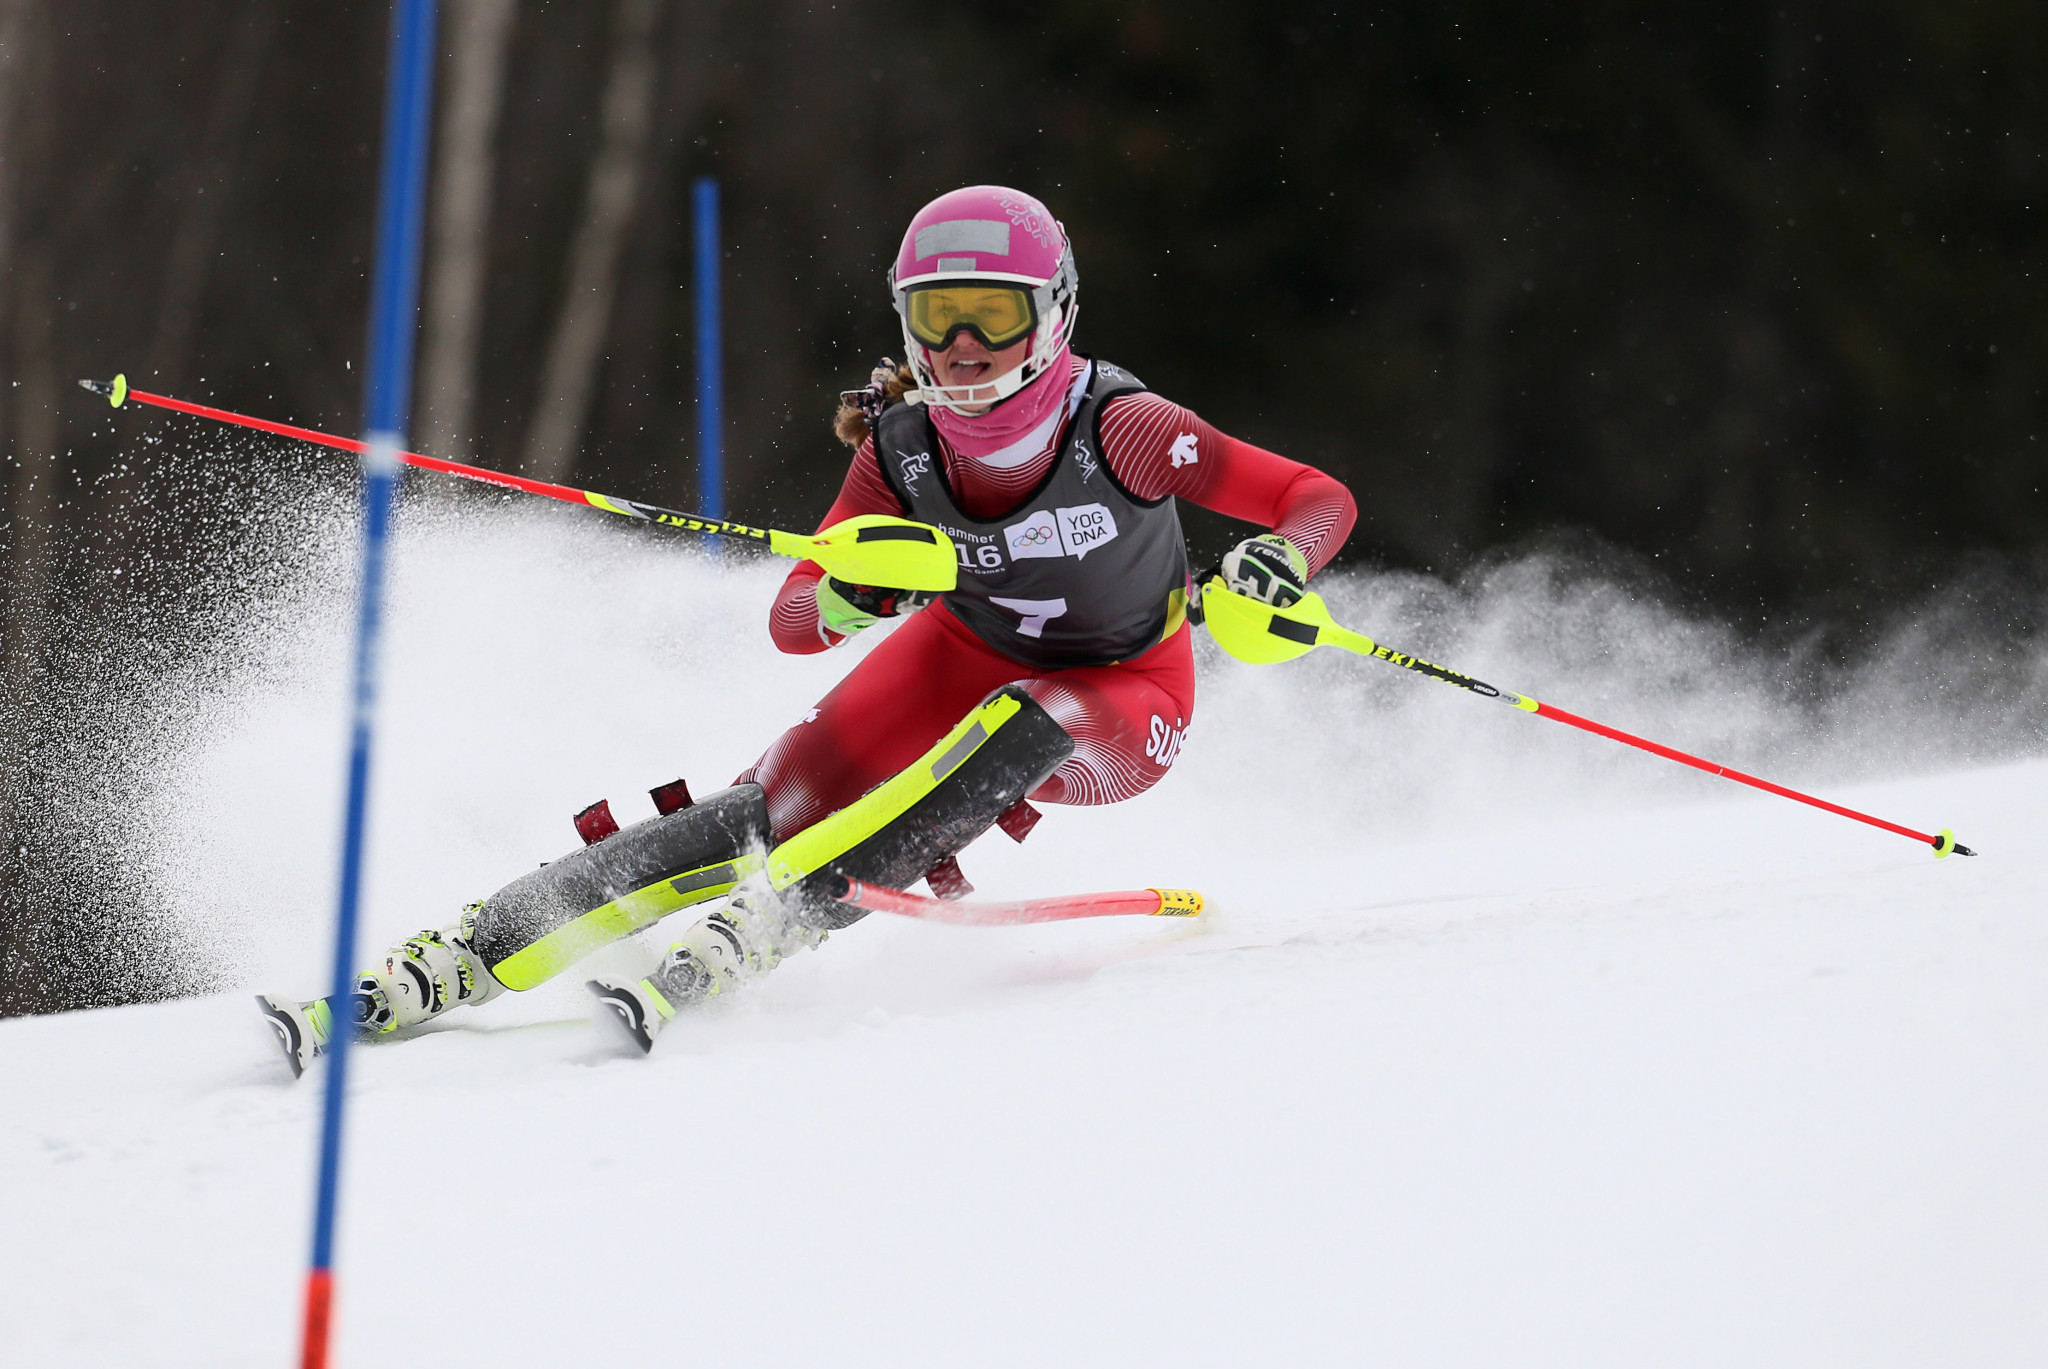 Switzerland's Aline Danioth was one of the best-performing athletes at the Lillehammer 2016 Winter Youth Olympic Games ©Getty Images